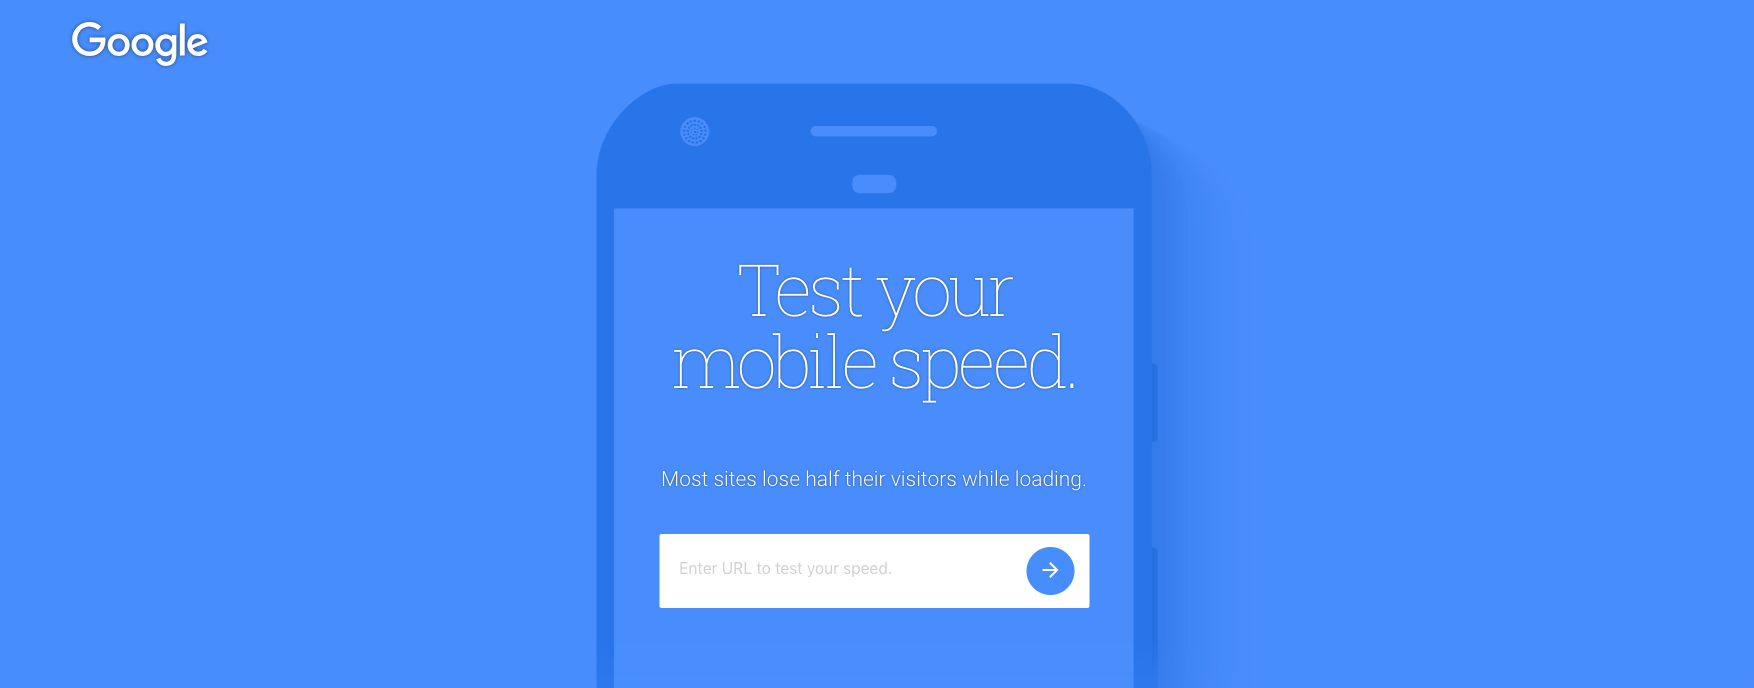 google ranking factors mobile load speed